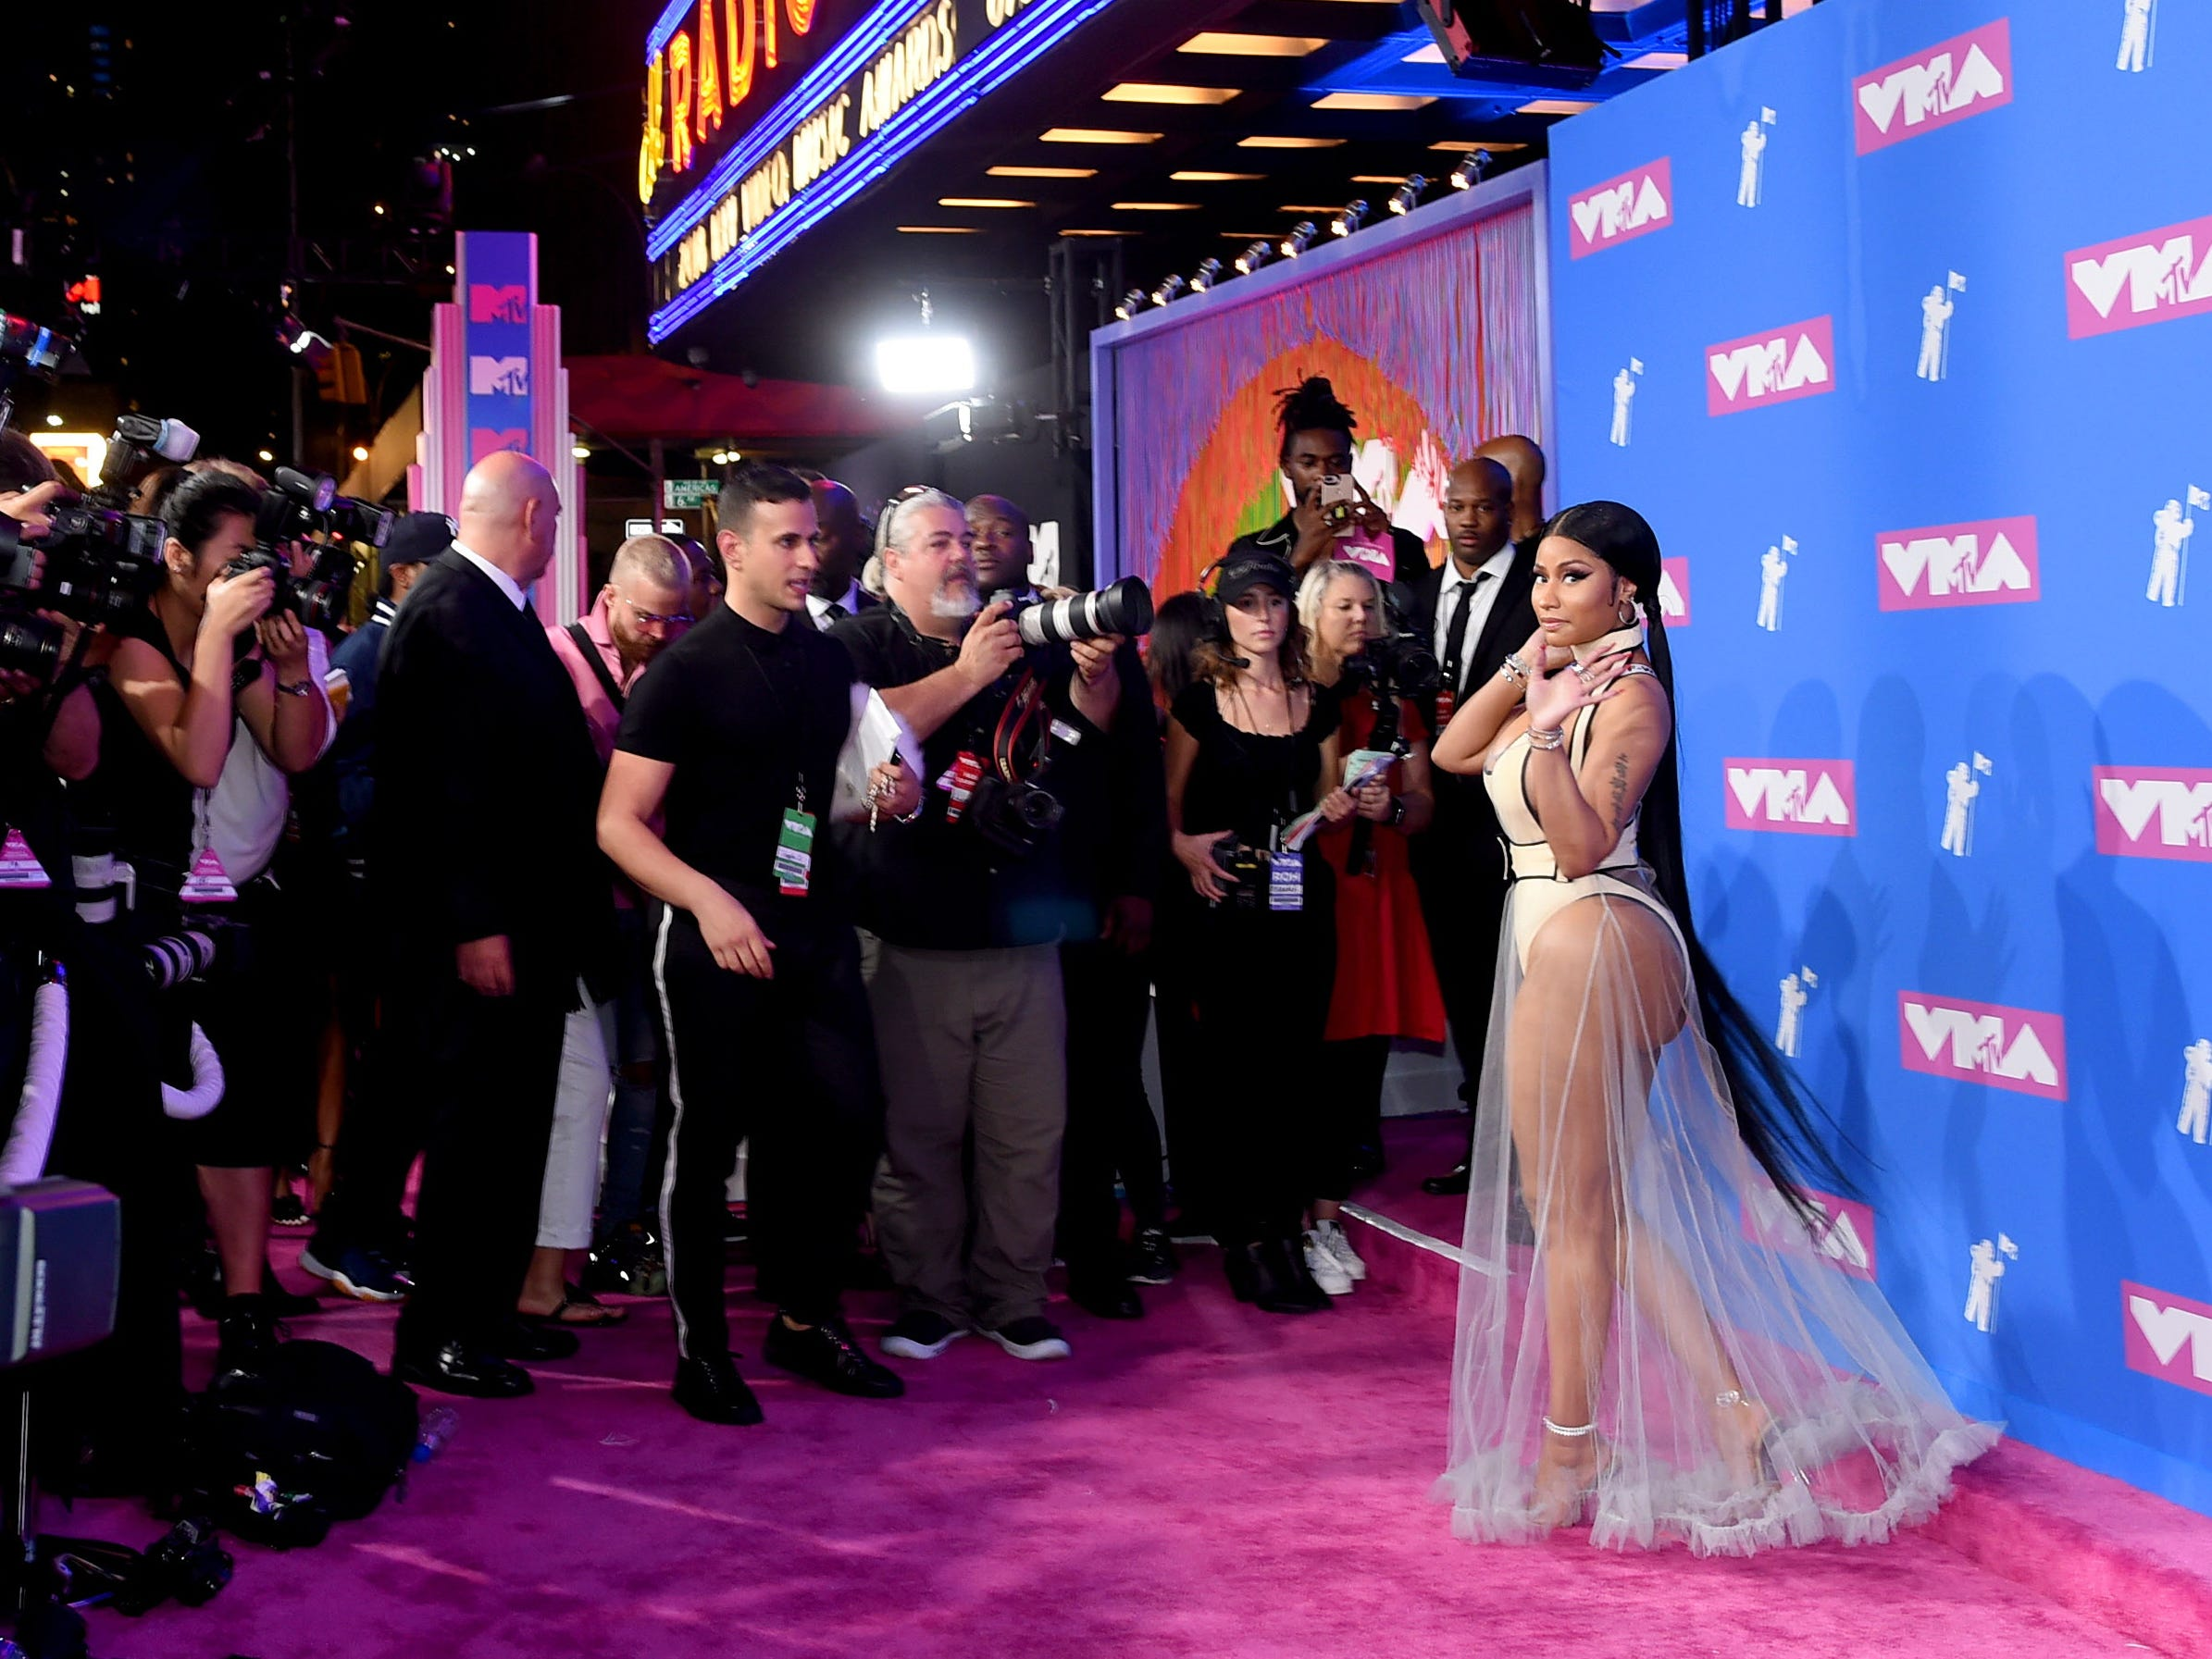 NEW YORK, NY - AUGUST 20: Nicki Minaj attends the 2018 MTV Video Music Awards at Radio City Music Hall on August 20, 2018 in New York City.  (Photo by Jamie McCarthy/Getty Images) ORG XMIT: 775210277 ORIG FILE ID: 1020303548